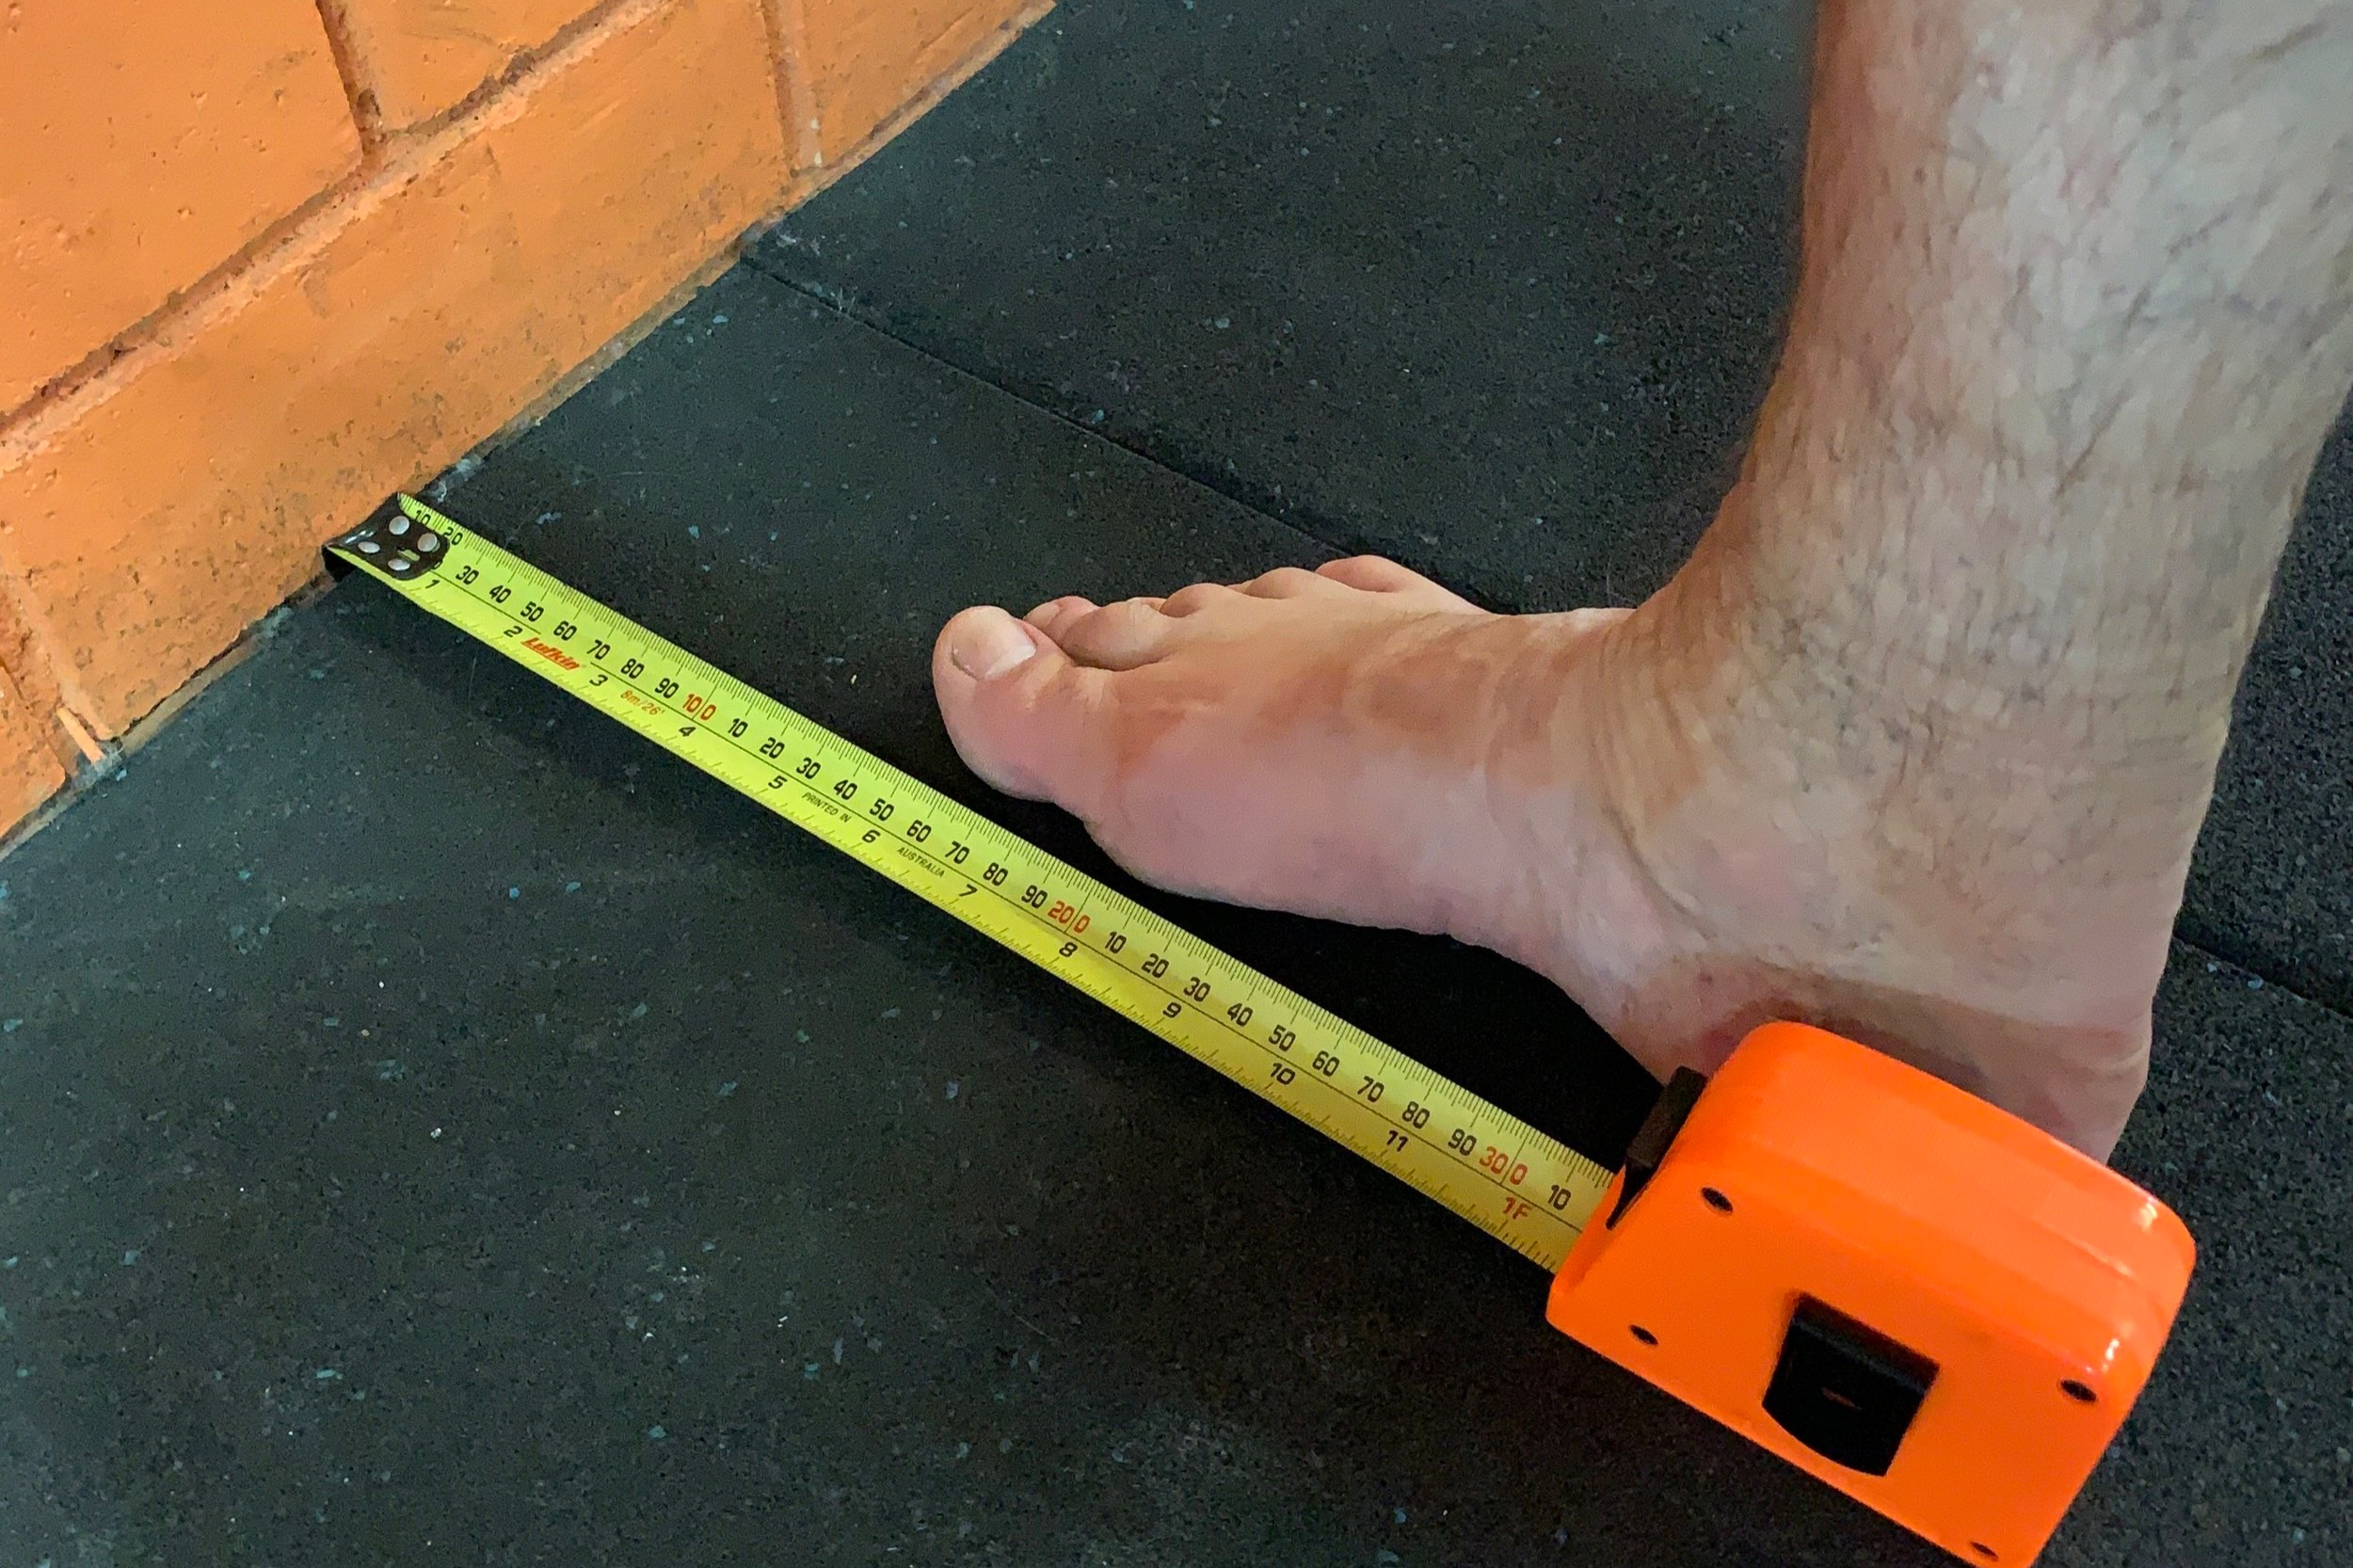 Place your foot with the big toe 13cm out from the wall